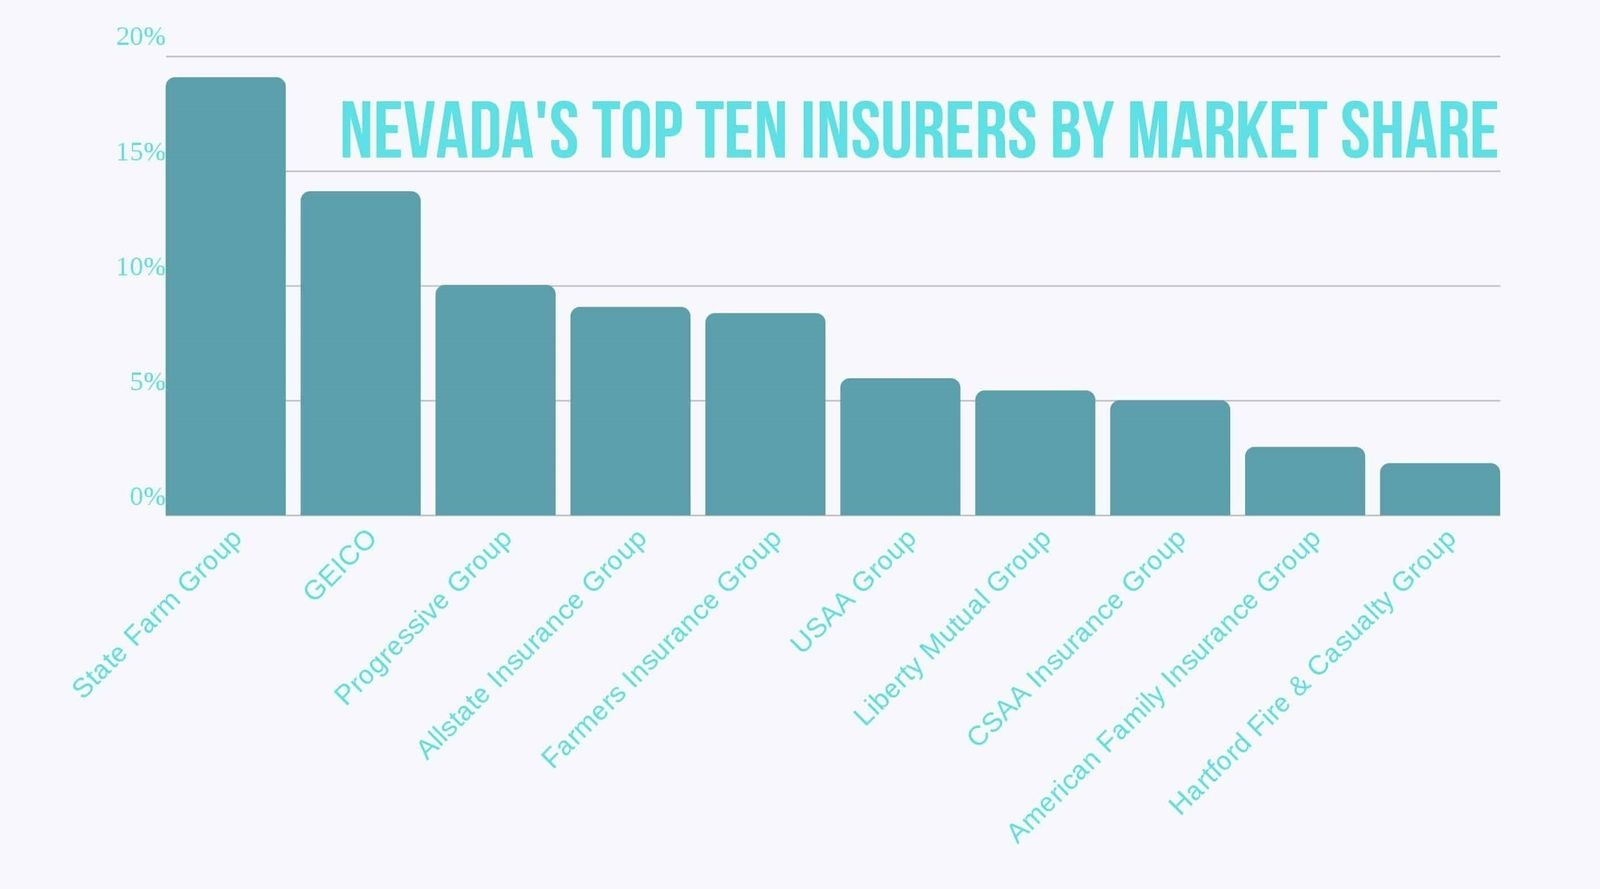 Nevada-Top-10-Auto-Insurers-by-Market-Share